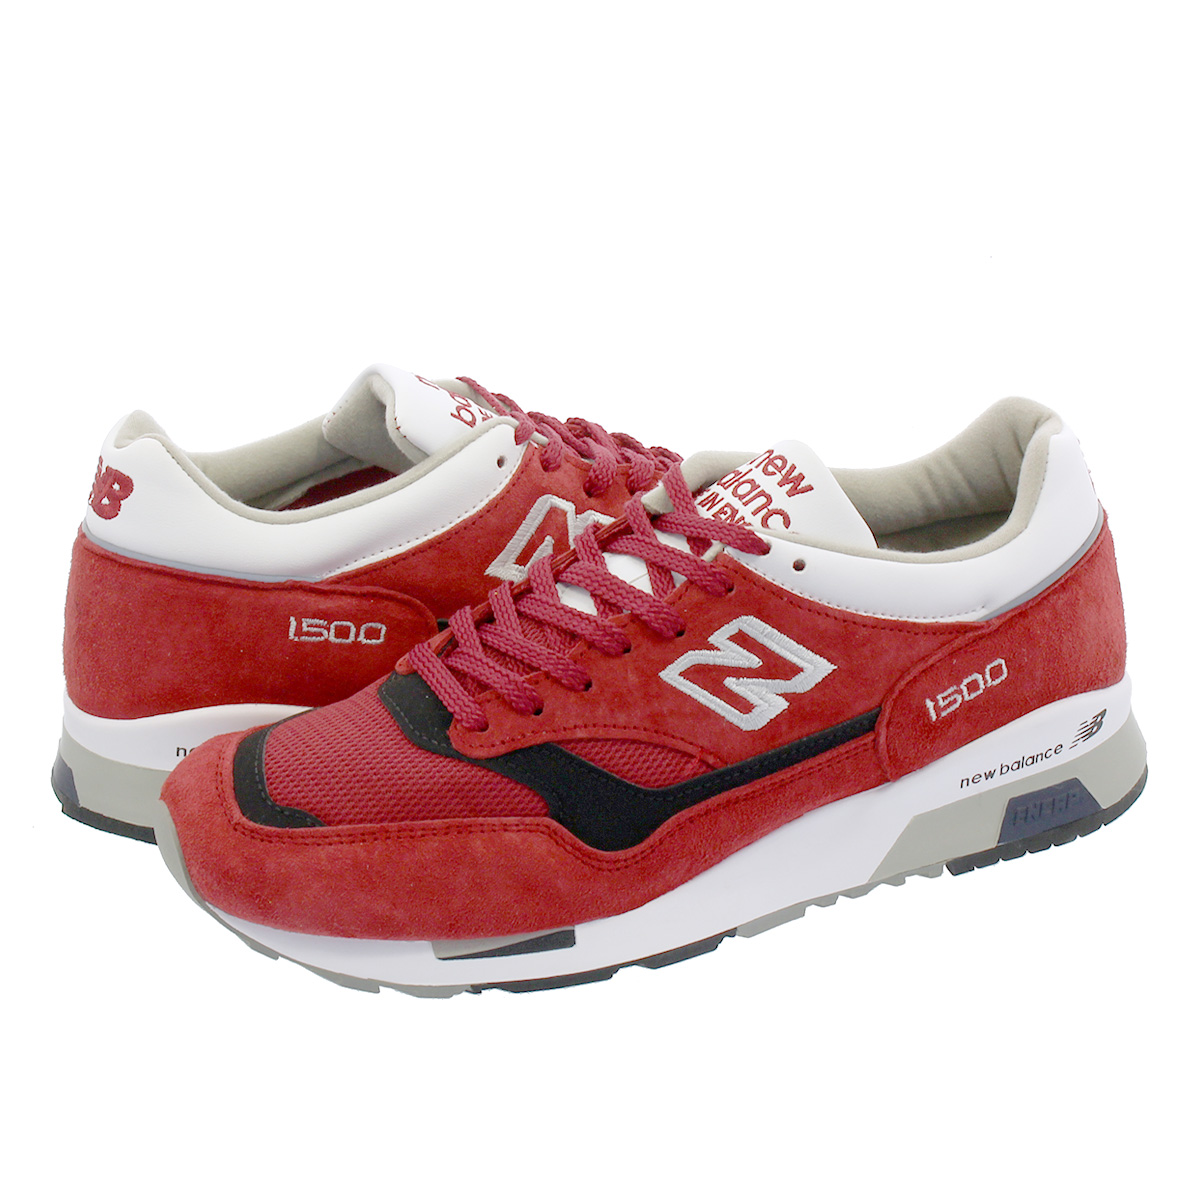 NEW BALANCE M1500CK 【Made in England】【Dワイズ】 ニューバランス M1500CKRED/BLACK